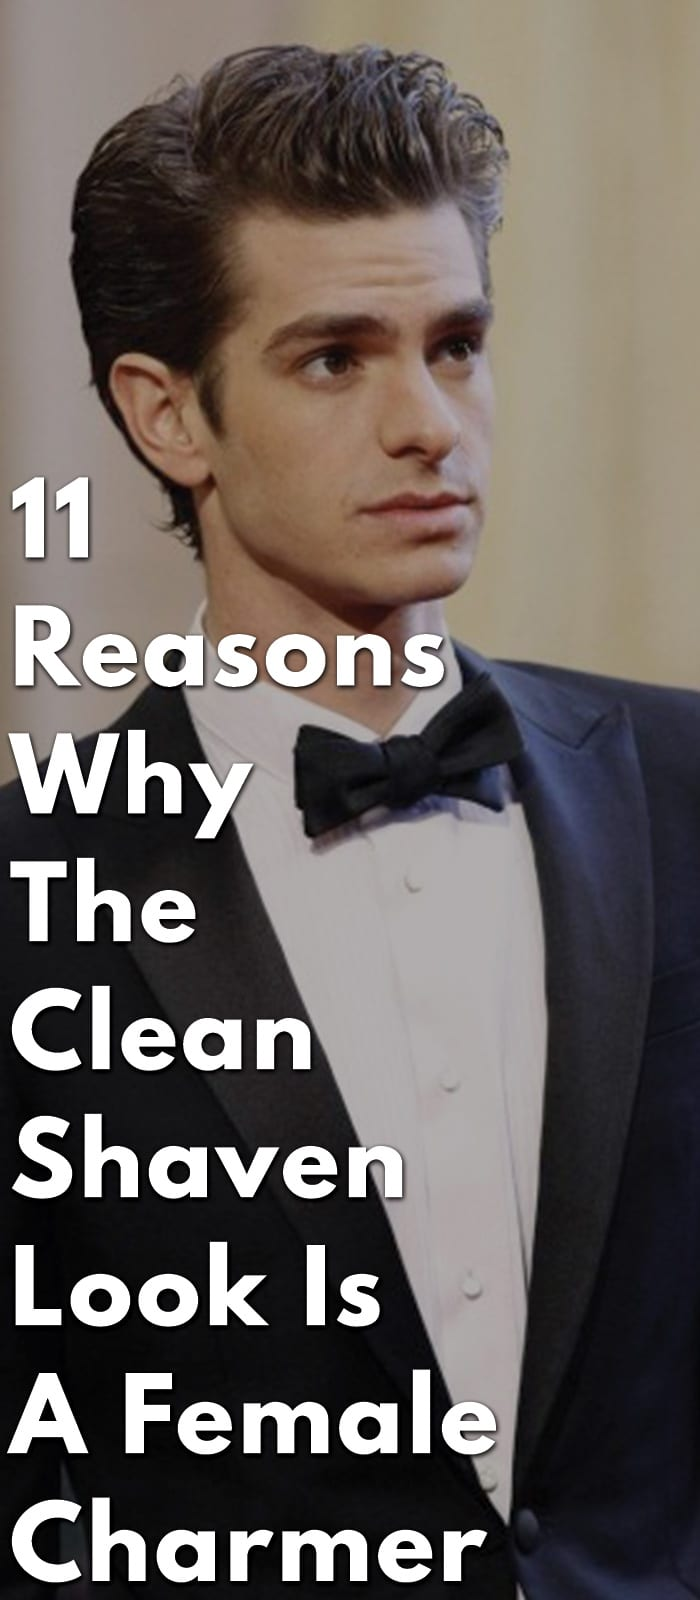 11-Reasons-Why-The-Clean-Shaven-Look-Is-A-Female-Charmer